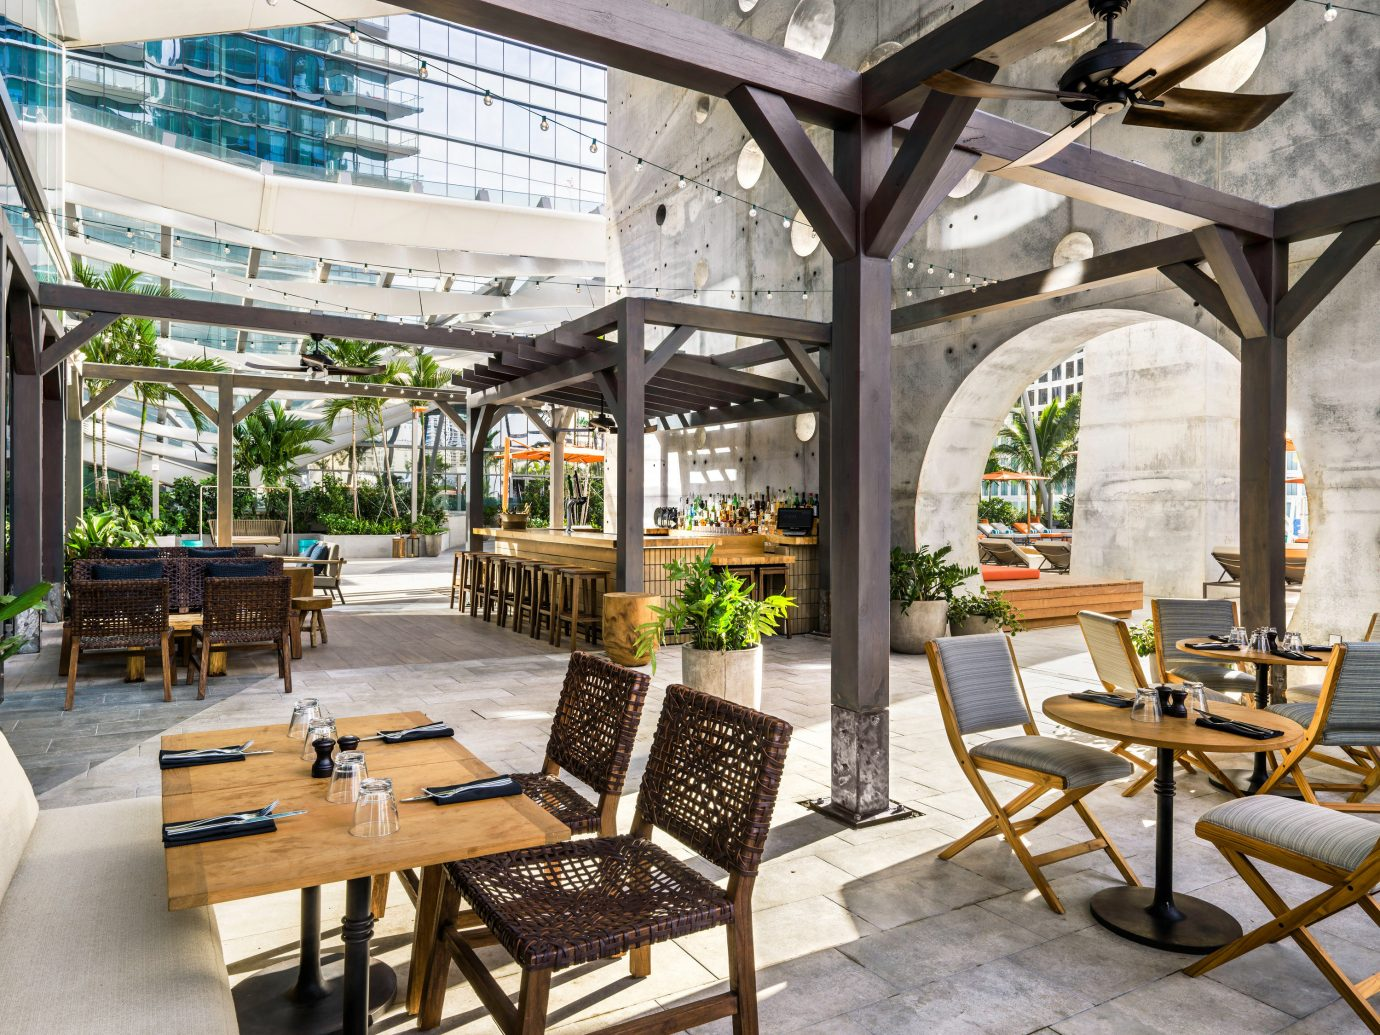 Food + Drink ground table chair outdoor room restaurant estate outdoor structure real estate Courtyard interior design Resort plaza orangery Patio porch Lobby furniture